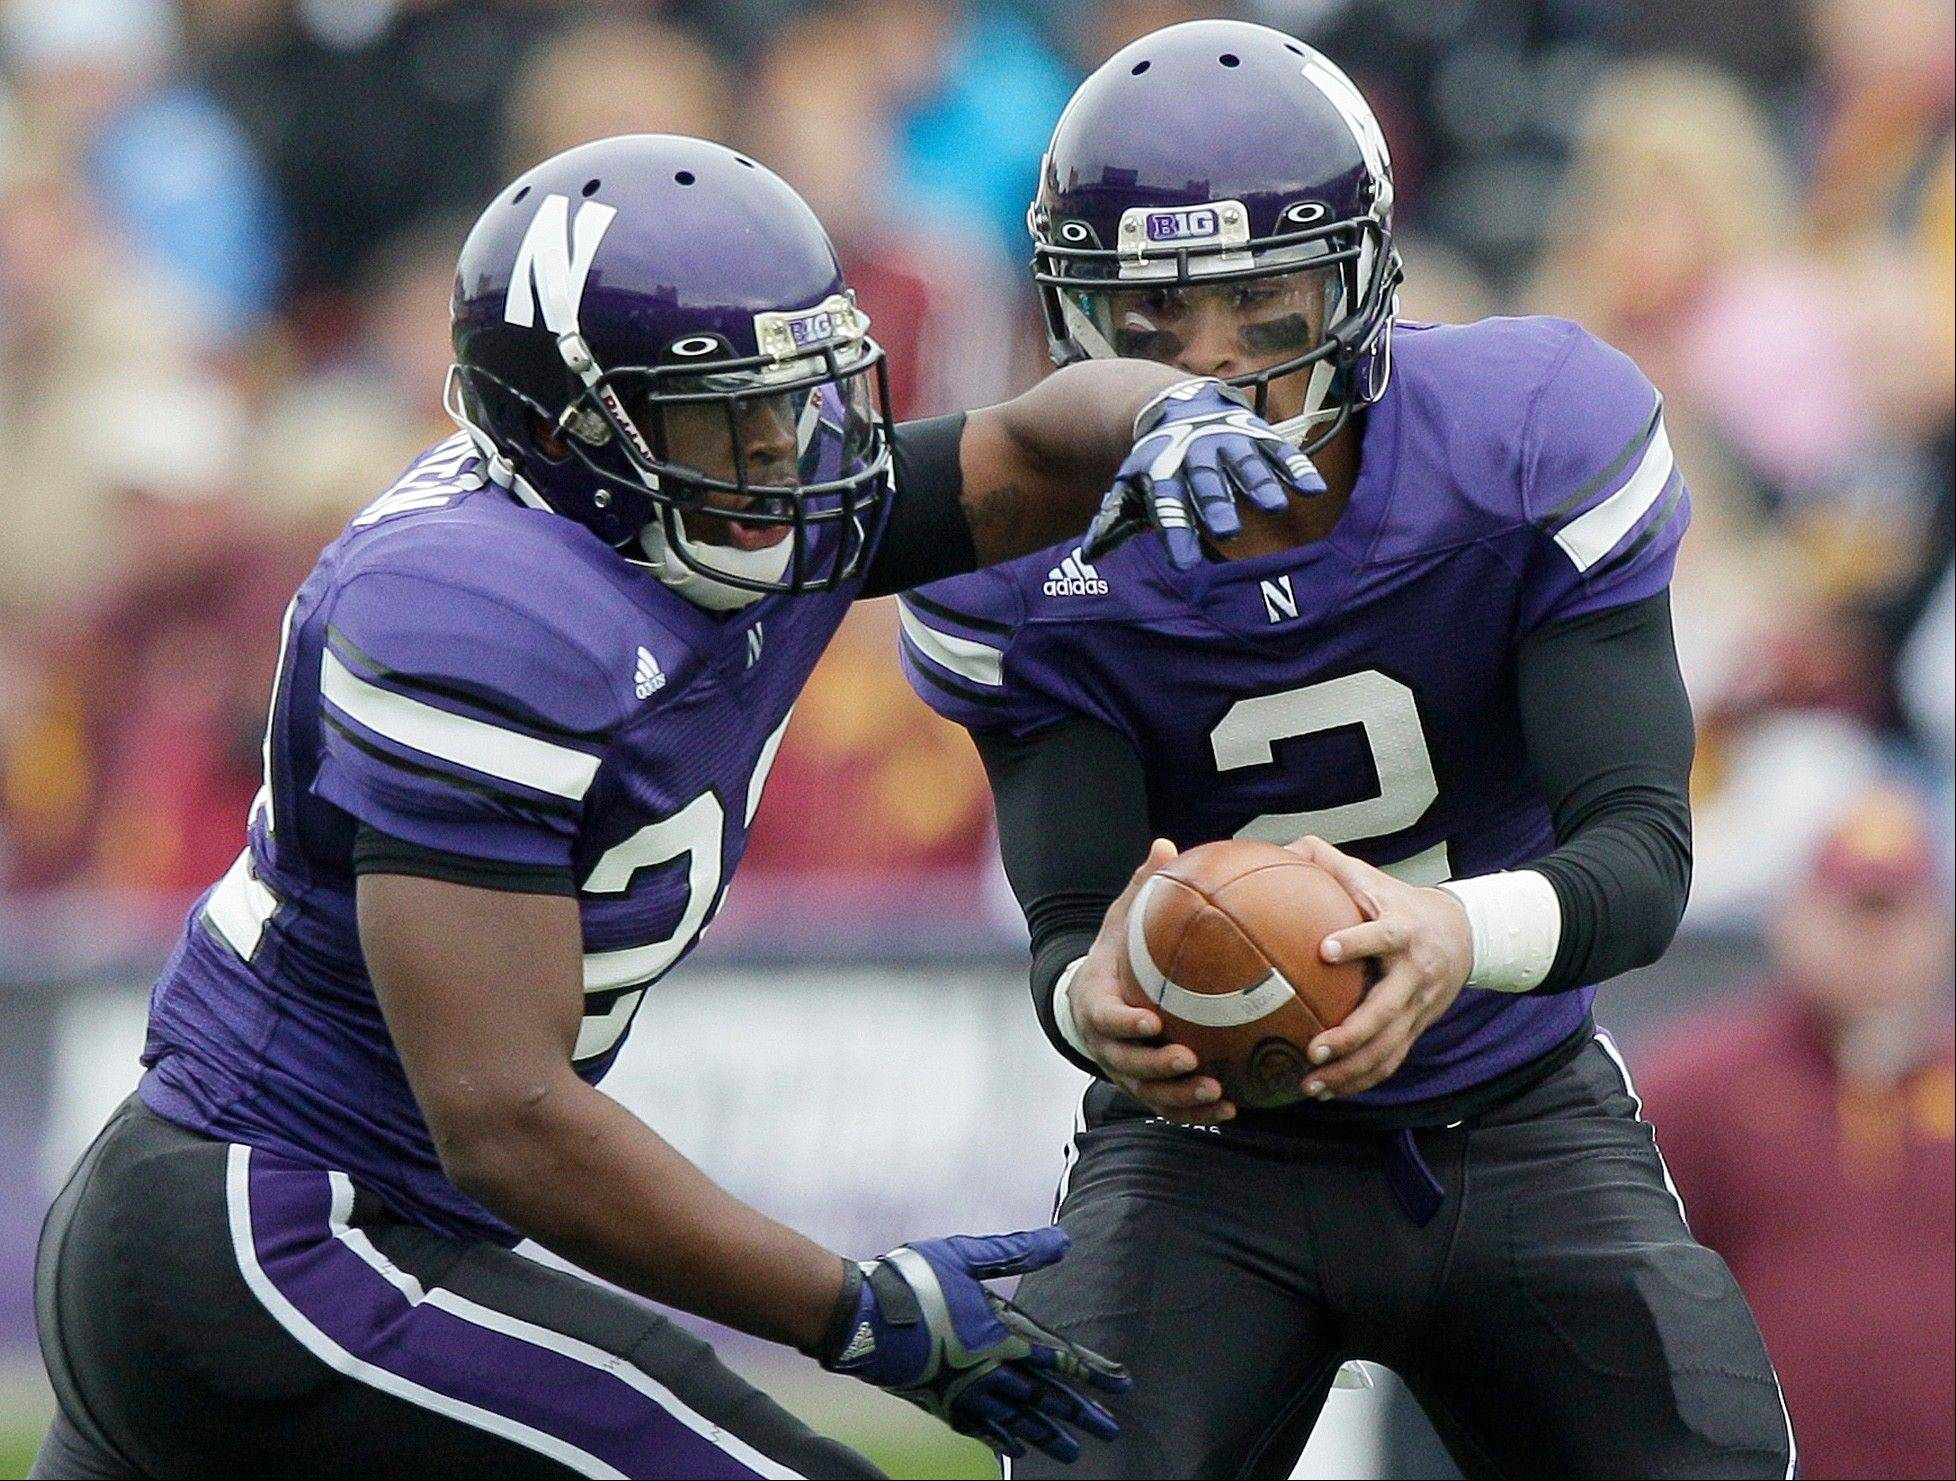 Northwestern quarterback Kain Colter hands the ball off to running back Treyvon Green (22) during a game against Minnesota in Evanston.